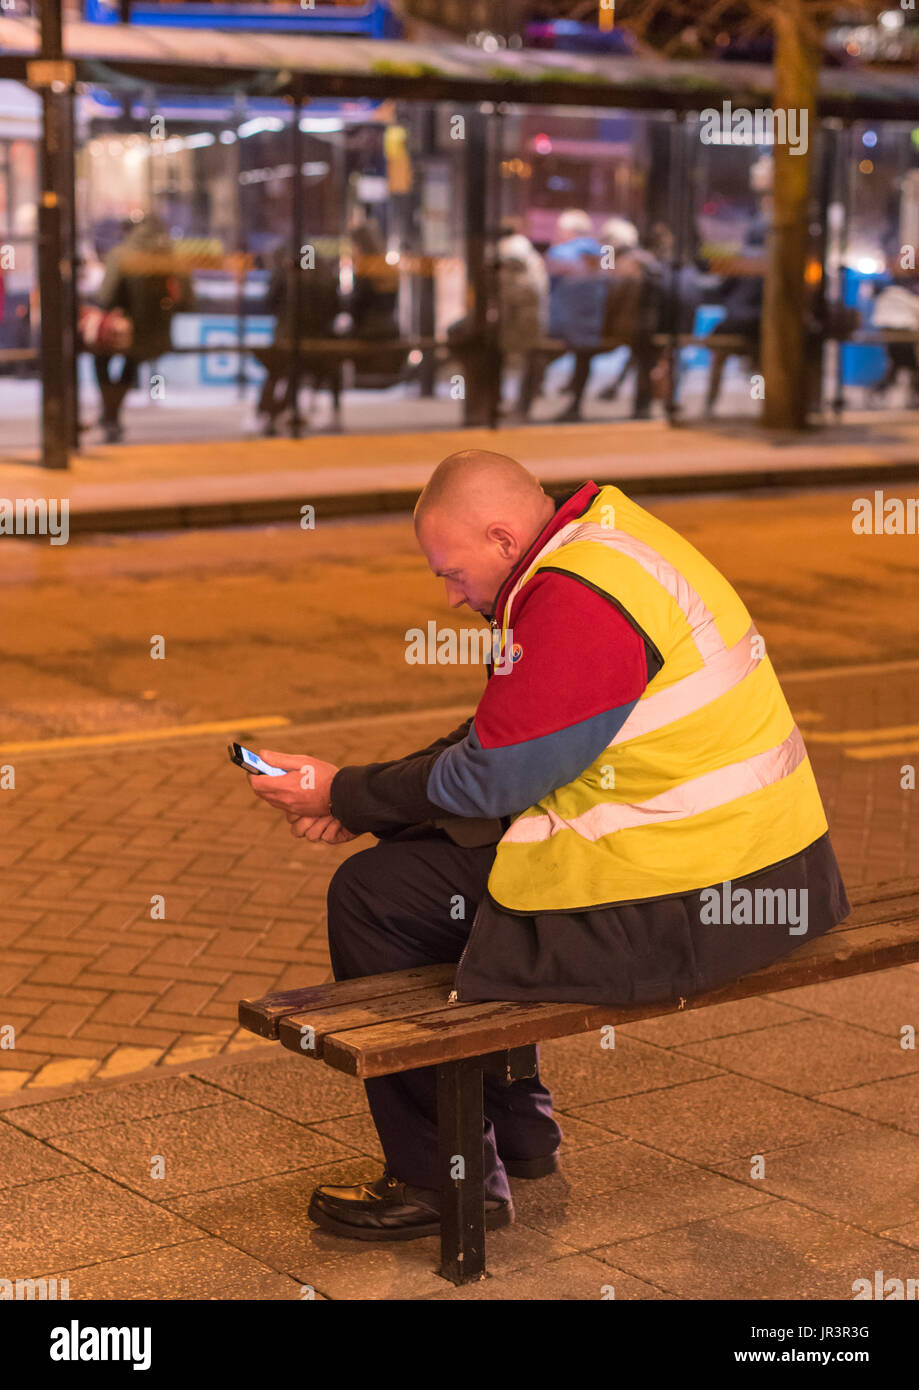 Bus driver  wearing a uniform sitting on a bench reading his mobile phone on the street at night in Canterbury, Kent. - Stock Image